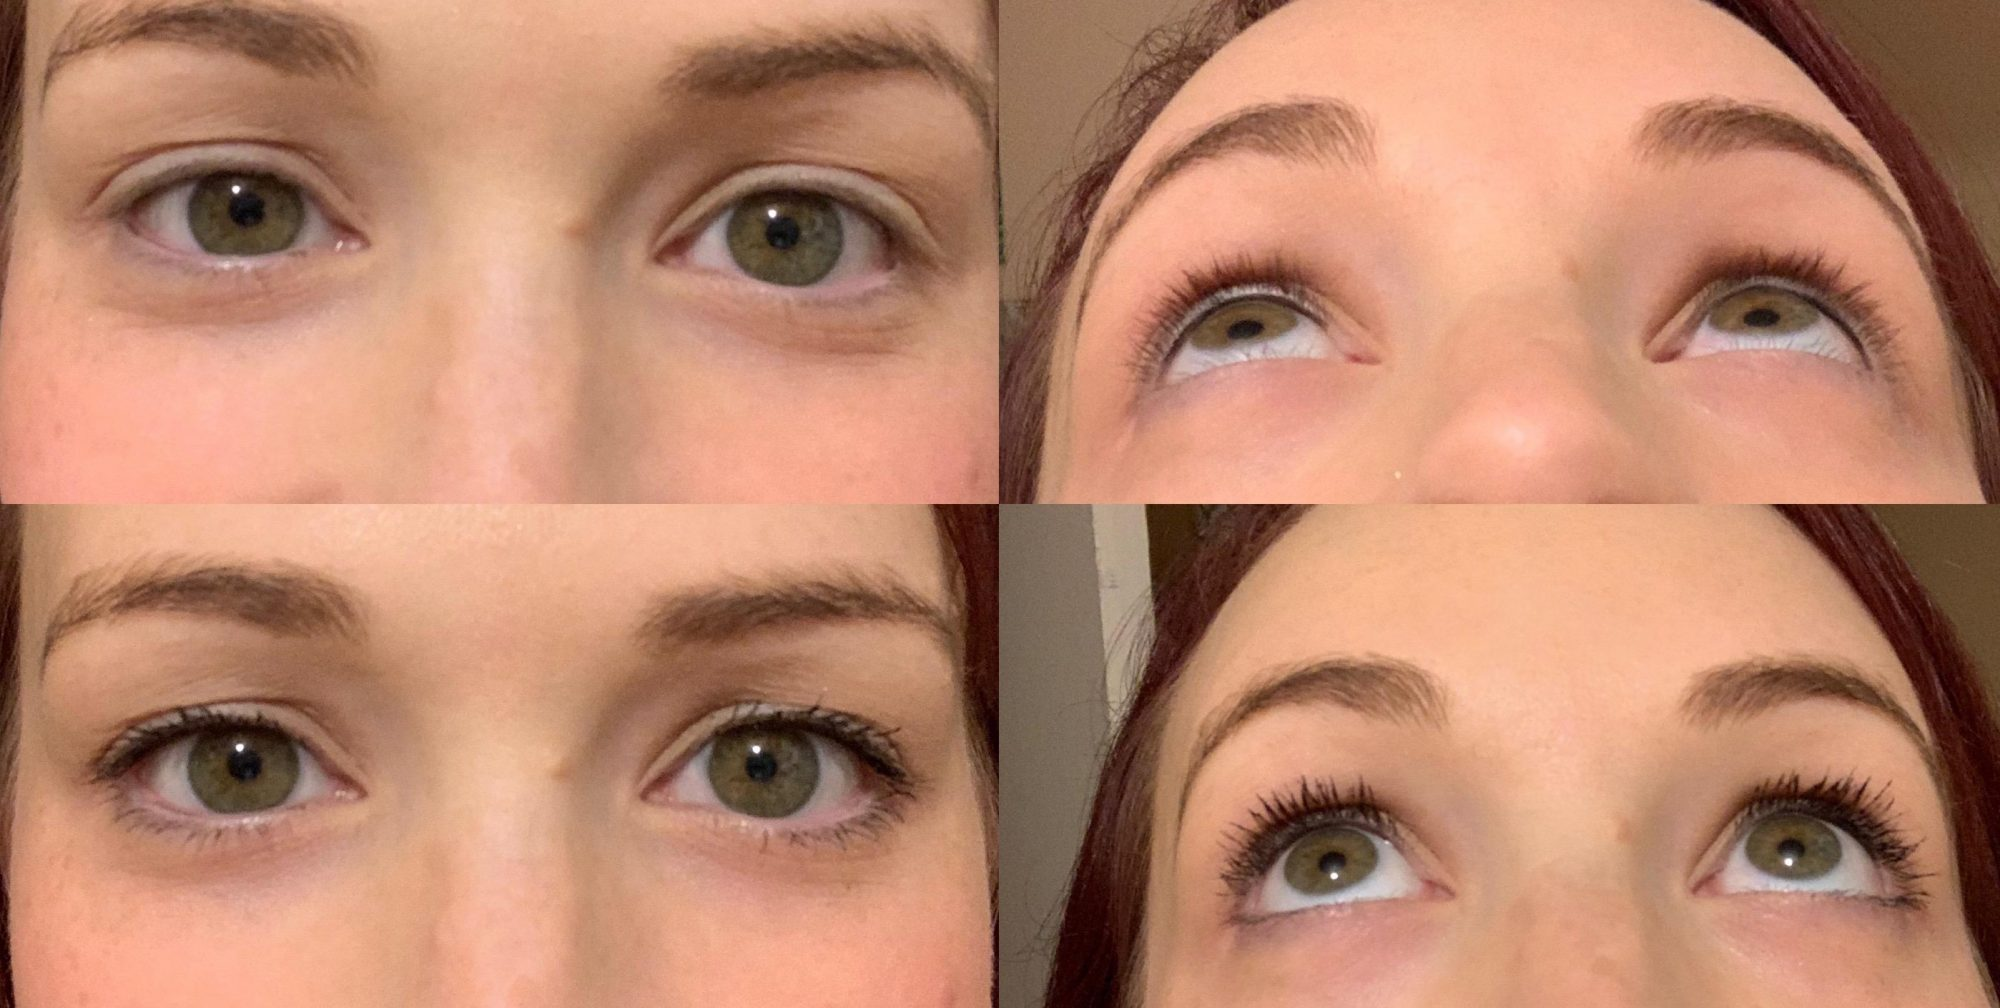 lash-princess-mascara-reviewer before-after  eyelashes woman beauty health eyes lashes makeup mascara